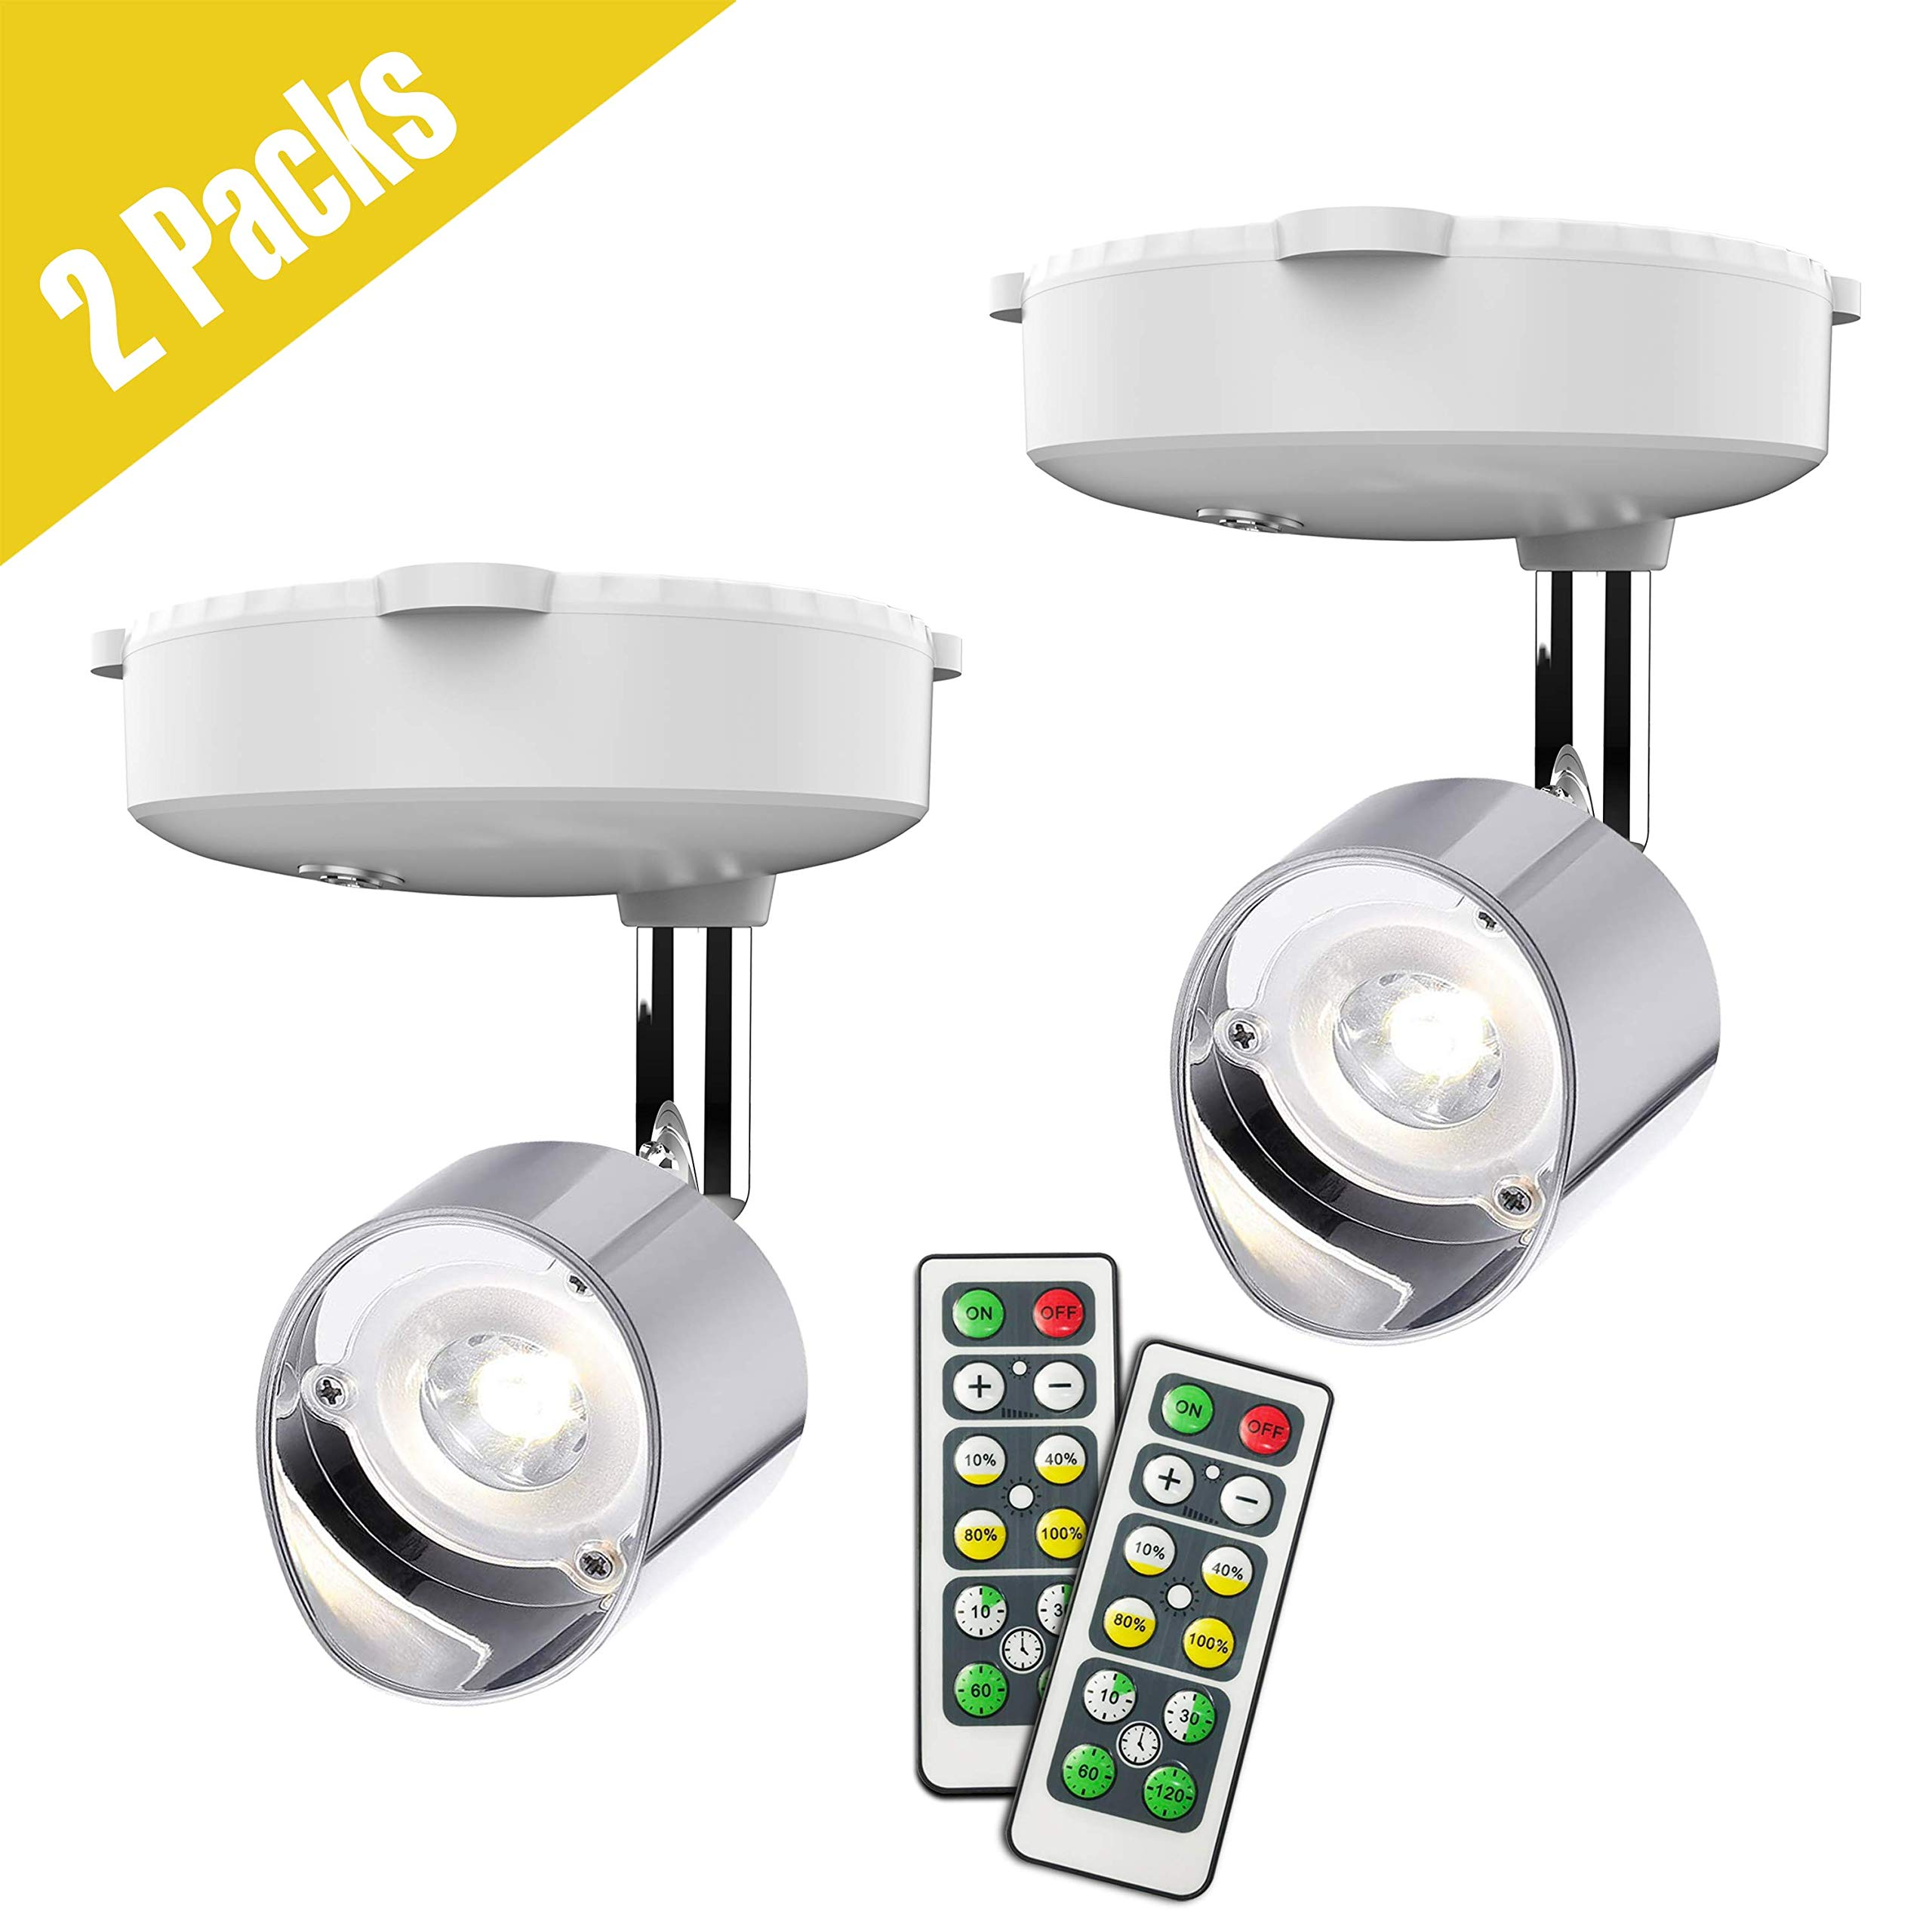 wireless spotlight battery operated accent lights art lights for paintings mini led picture light puck lights wall light 4000k light 80 lumens